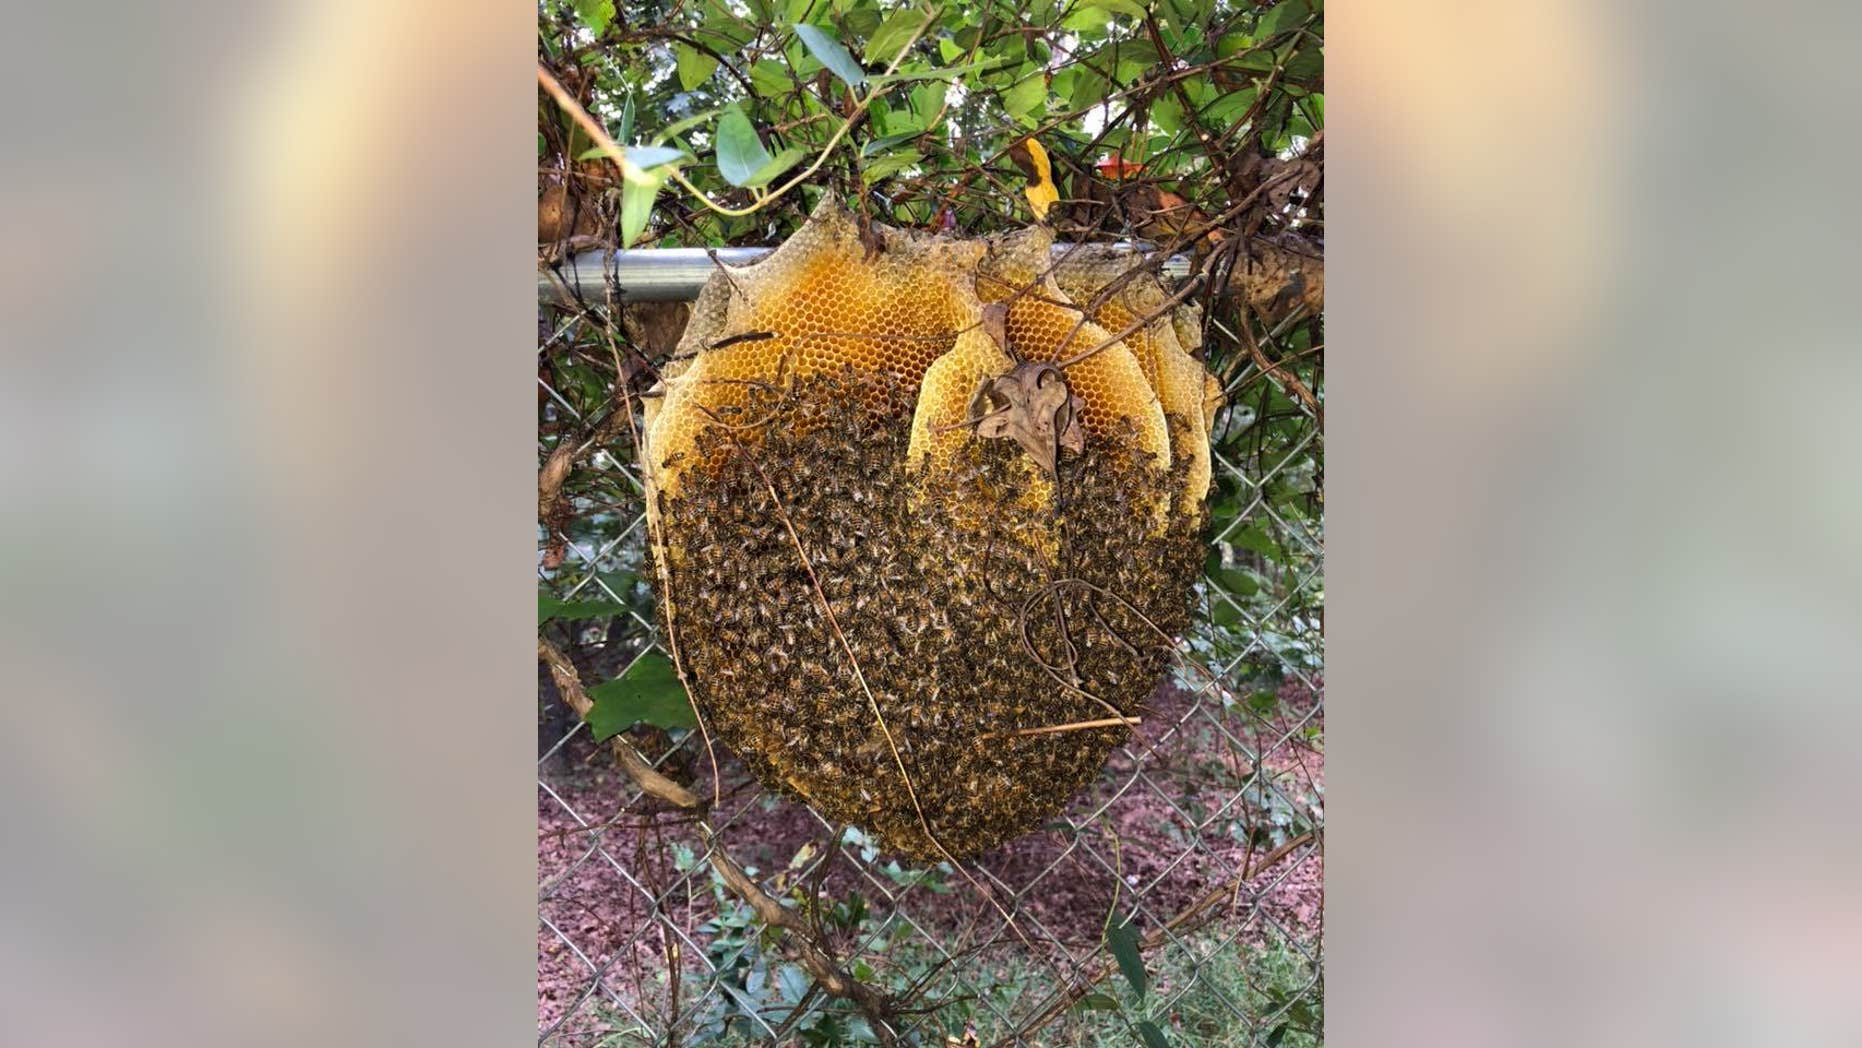 Extremely rare 'open' beehive in Virginia stuns wildlife expert | Fox News